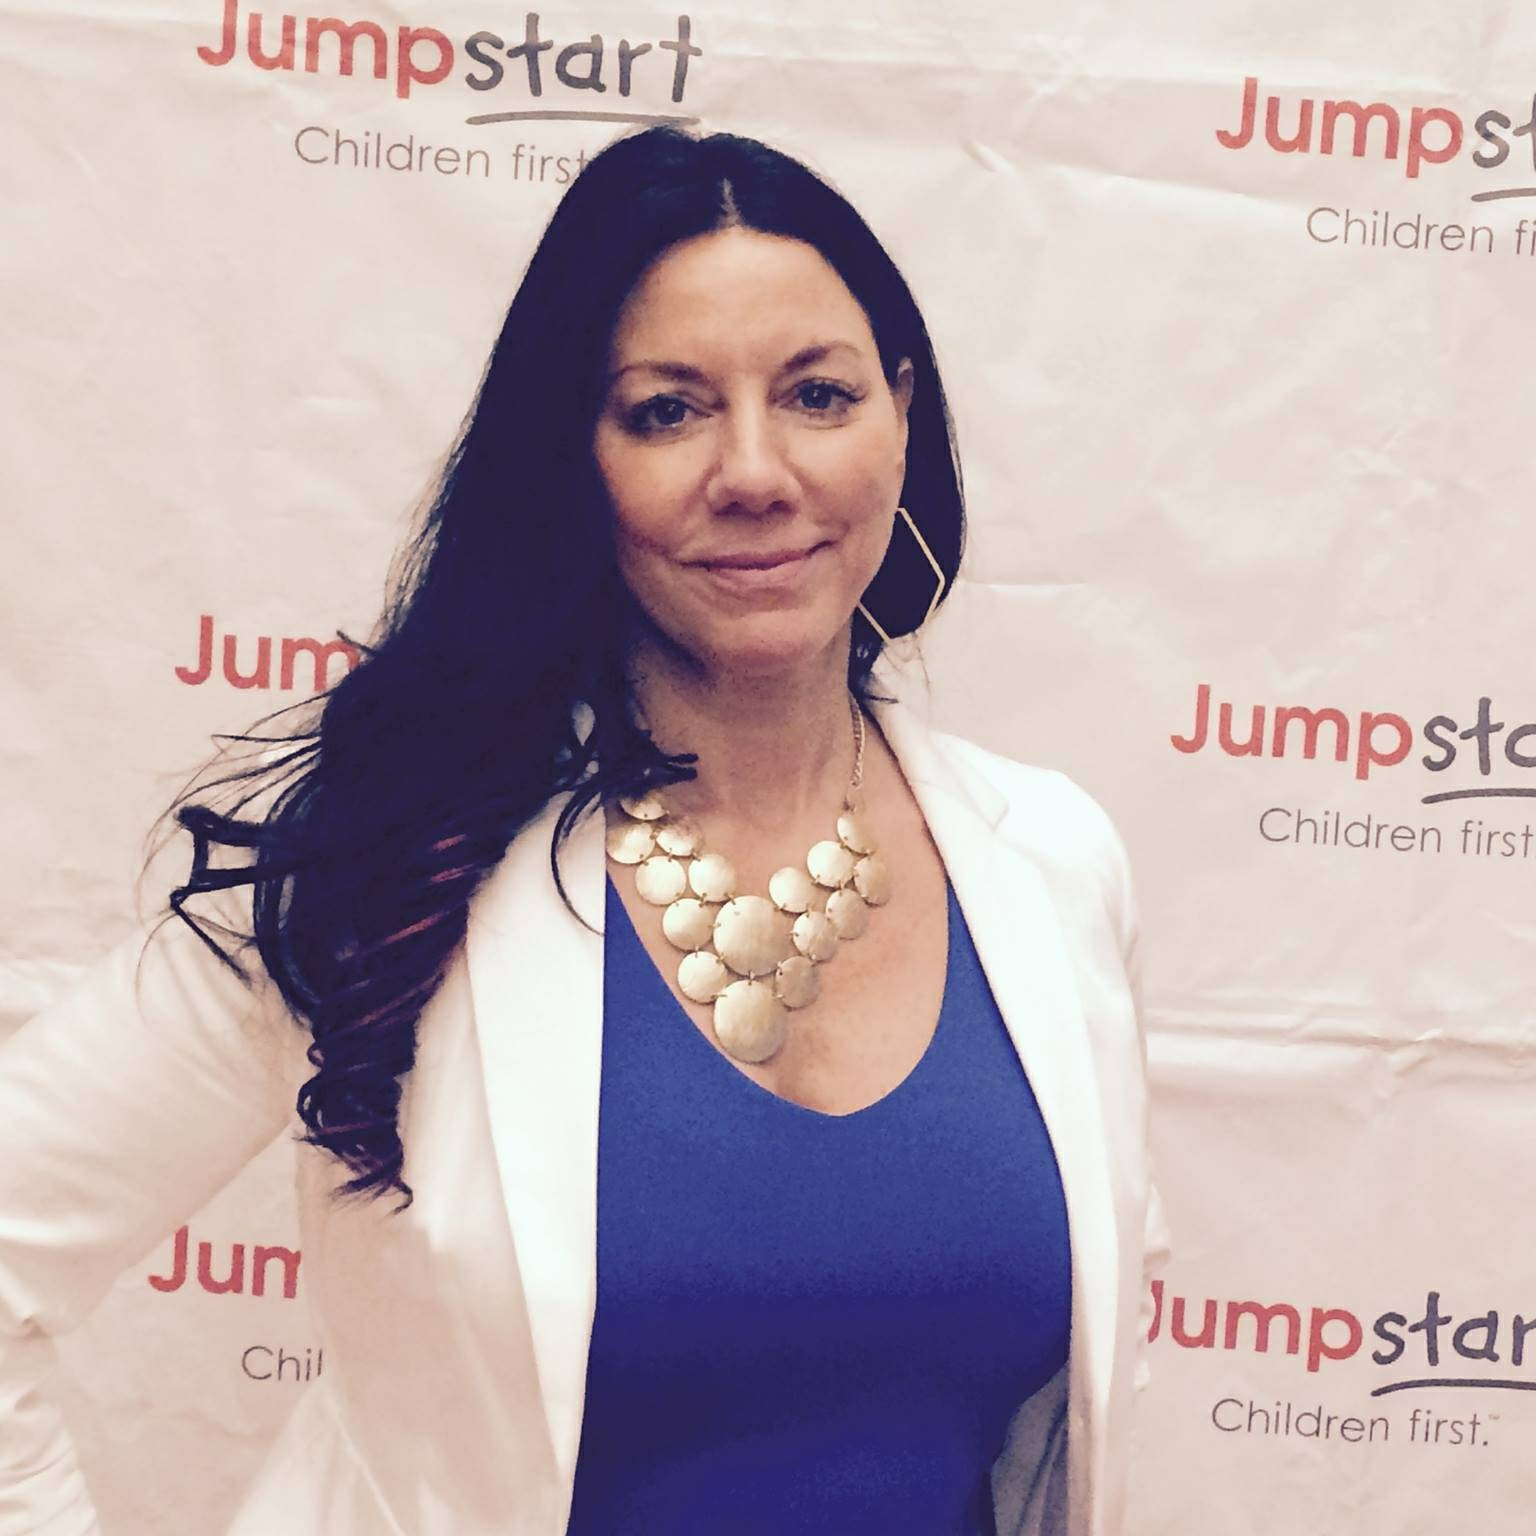 Susan is Appointed to the Jumpstart Advisory Board.